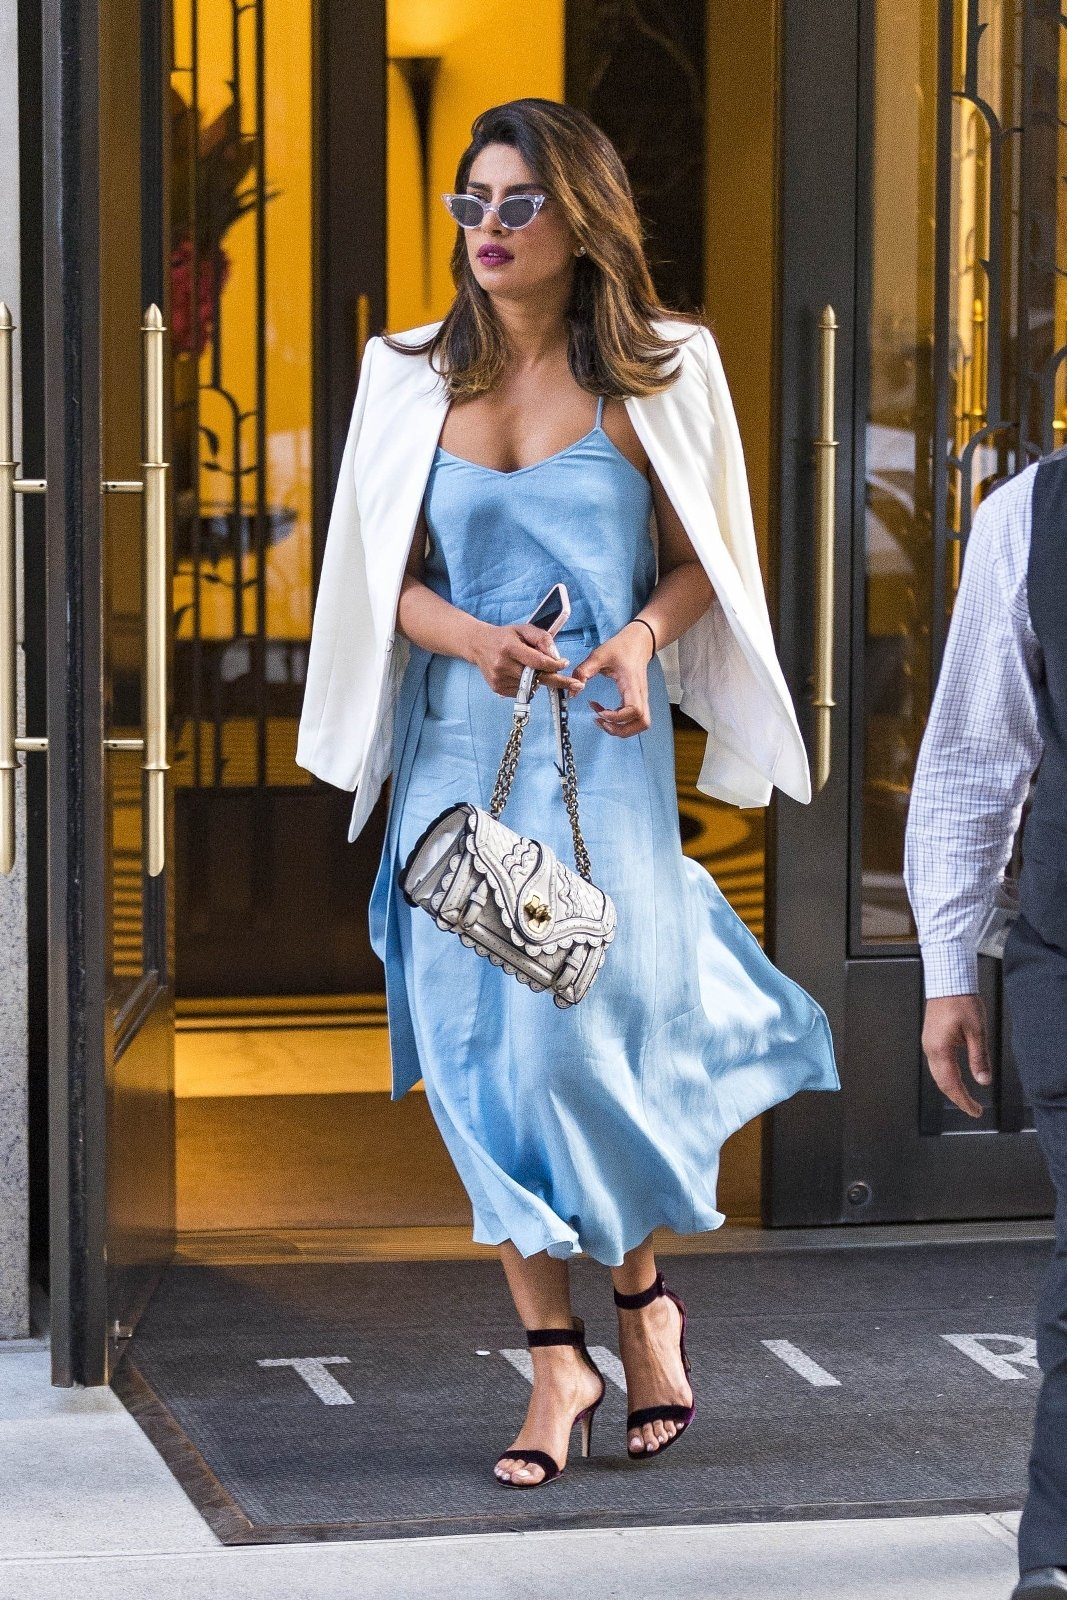 ** RIGHTS: WORLDWIDE EXCEPT IN BELGIUM, FRANCE, GERMANY, GREECE, NETHERLANDS, POLAND, PORTUGAL, SPAIN ** New York, NY  - Priyanka Chopra leaves her hotel in a baby blue dress, black heels and a white blazer headed to 'Park Avenue summer' to meet up with boyfriend Nick Jonas for a romantic dinner for two.  Pictured: Priyanka Chopra  BACKGRID USA 12 JUNE 2018, Image: 374715429, License: Rights-managed, Restrictions: , Model Release: no, Credit line: Profimedia, AKM-GSI